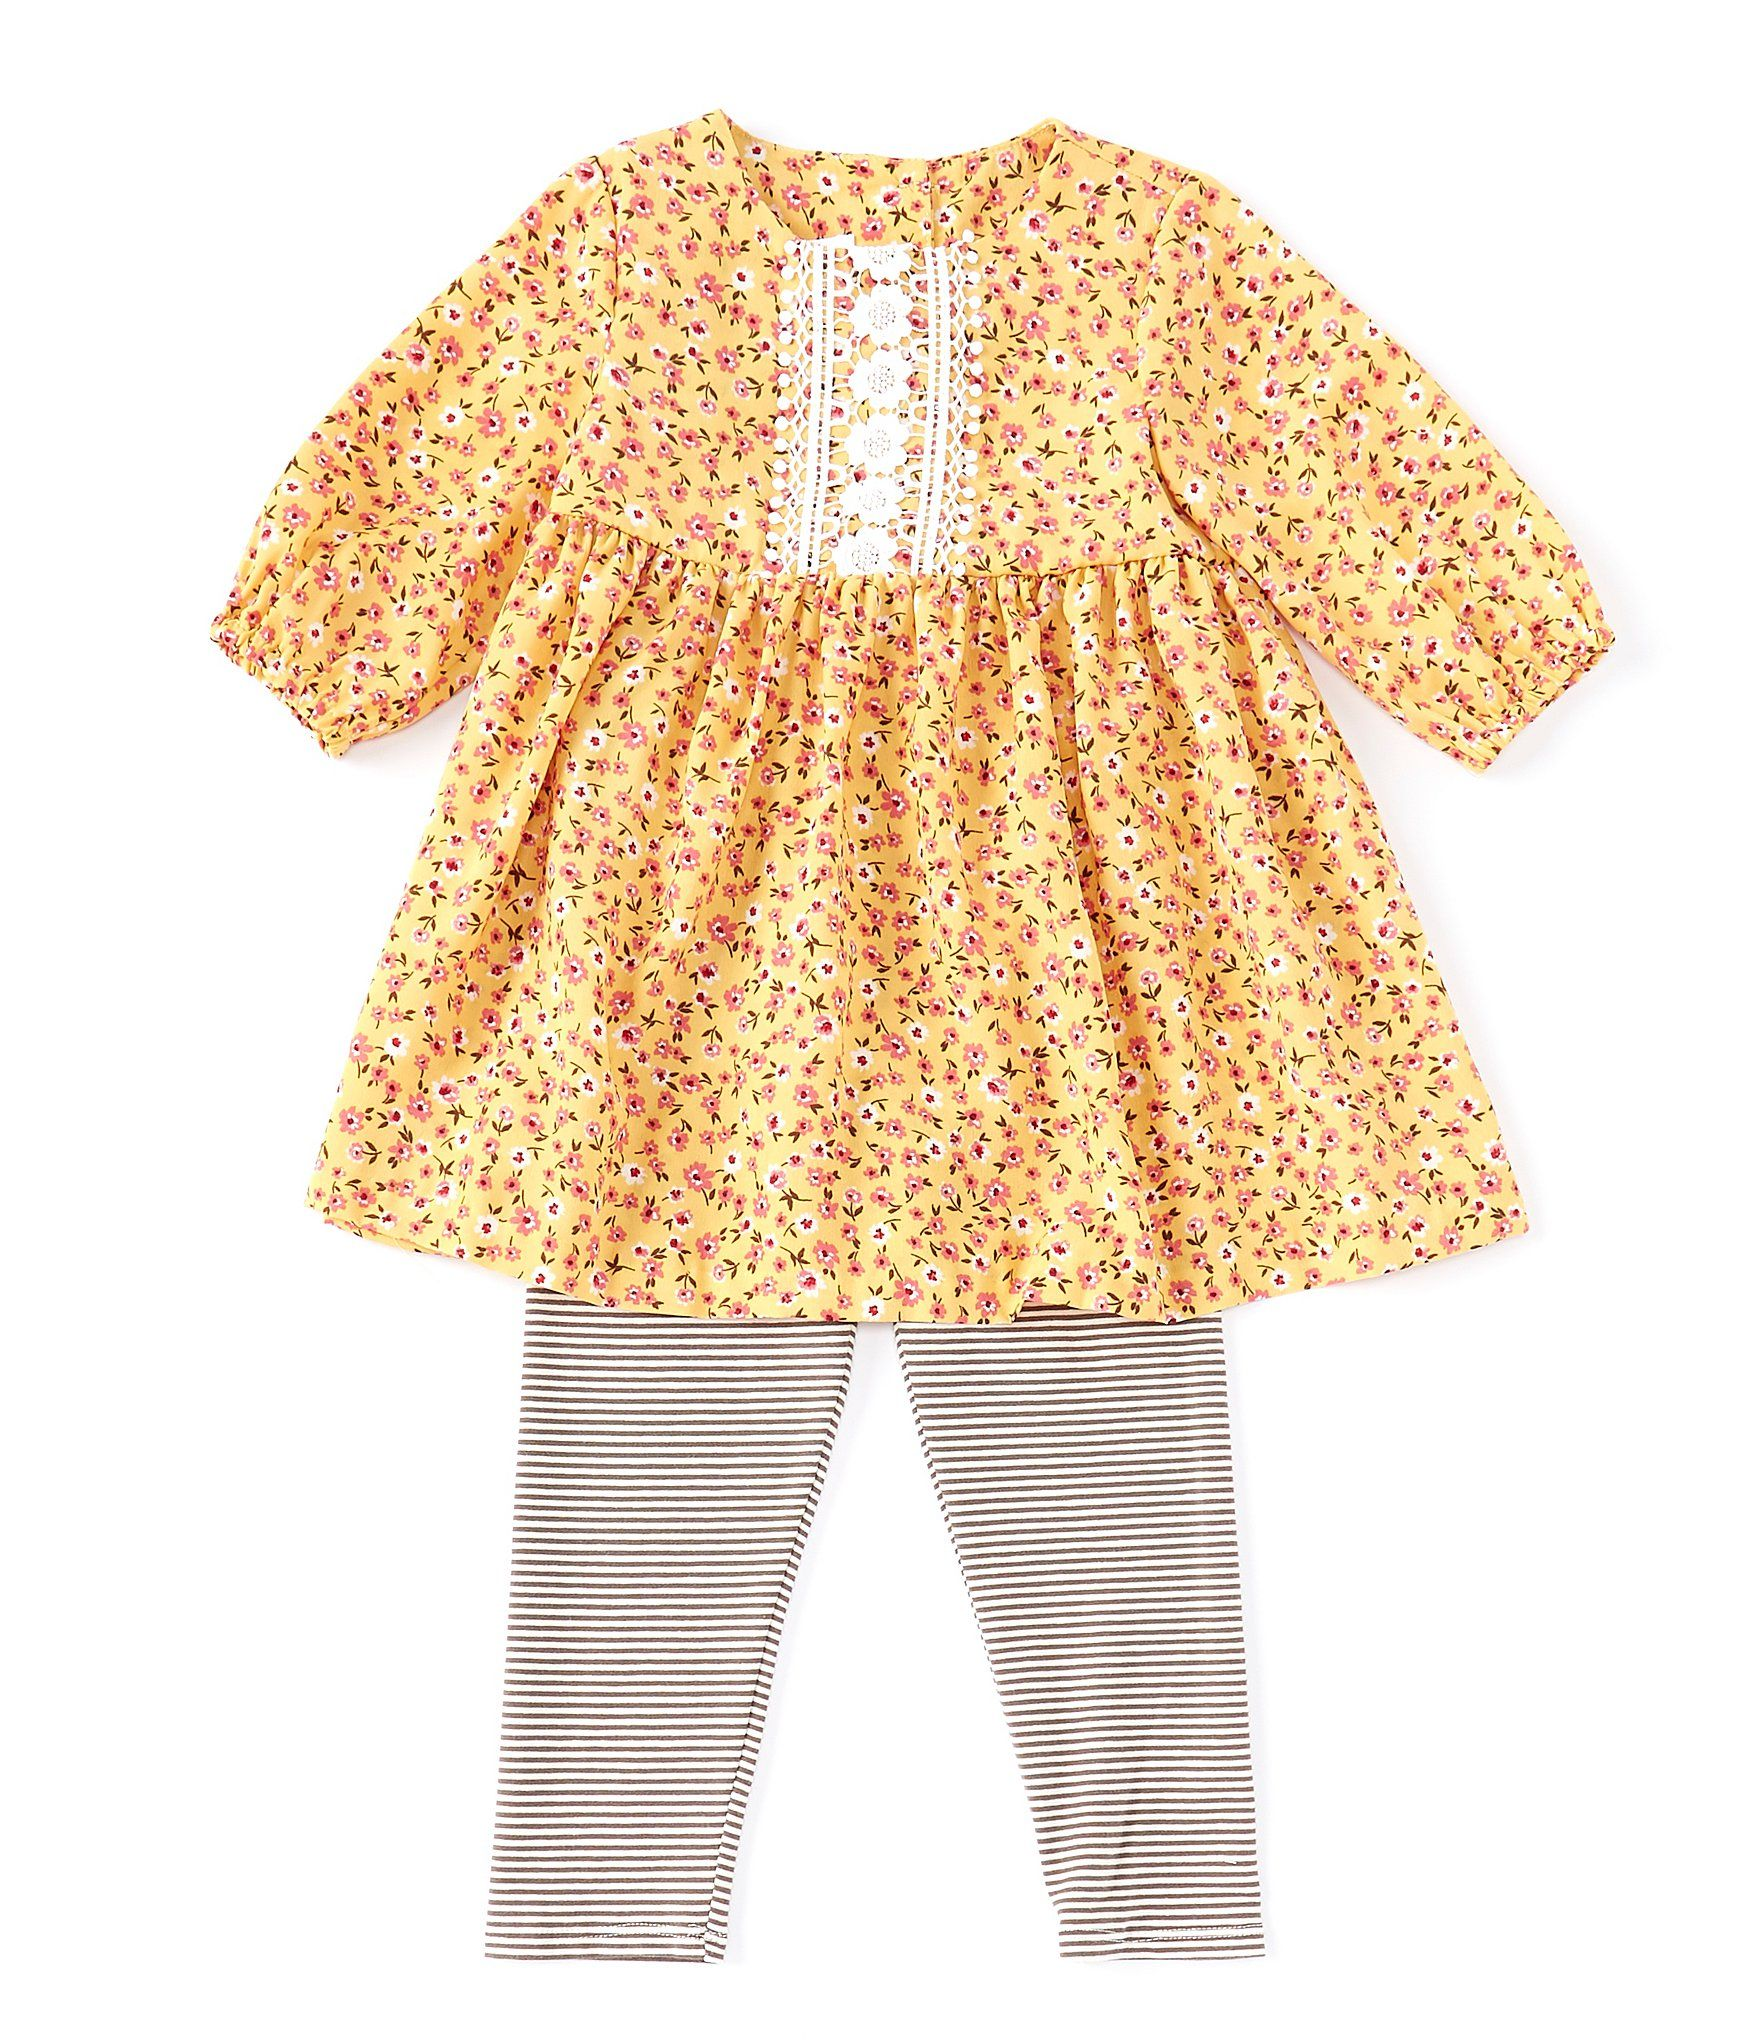 Bonnie Jean Little Girls 2T-6X Ditsy-Floral Tunic  Striped Leggings Set - Yellow 6X #stripedleggings